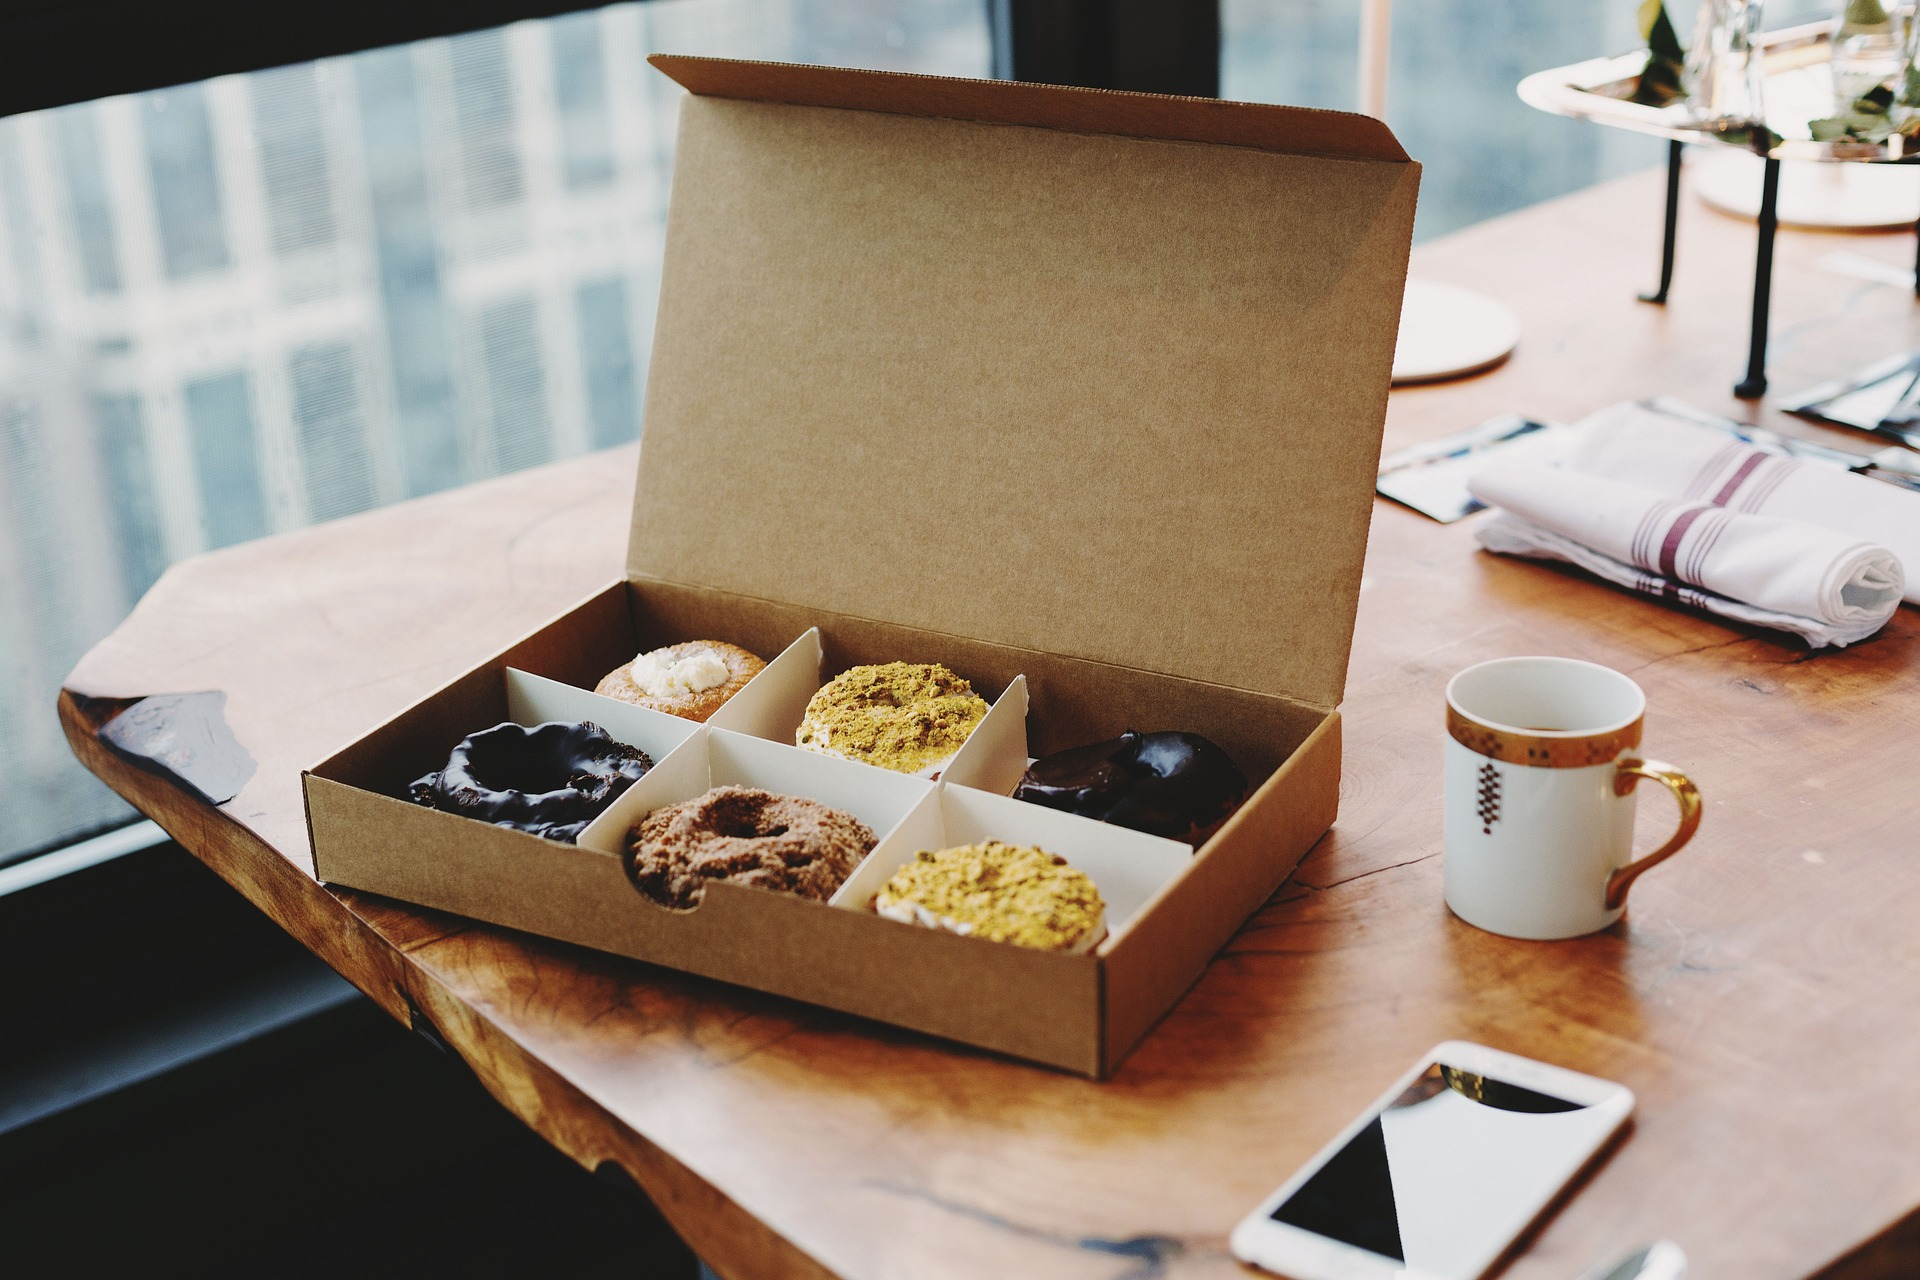 GRAB COFFEE AND DONUTS WITH NEIGHBORS -